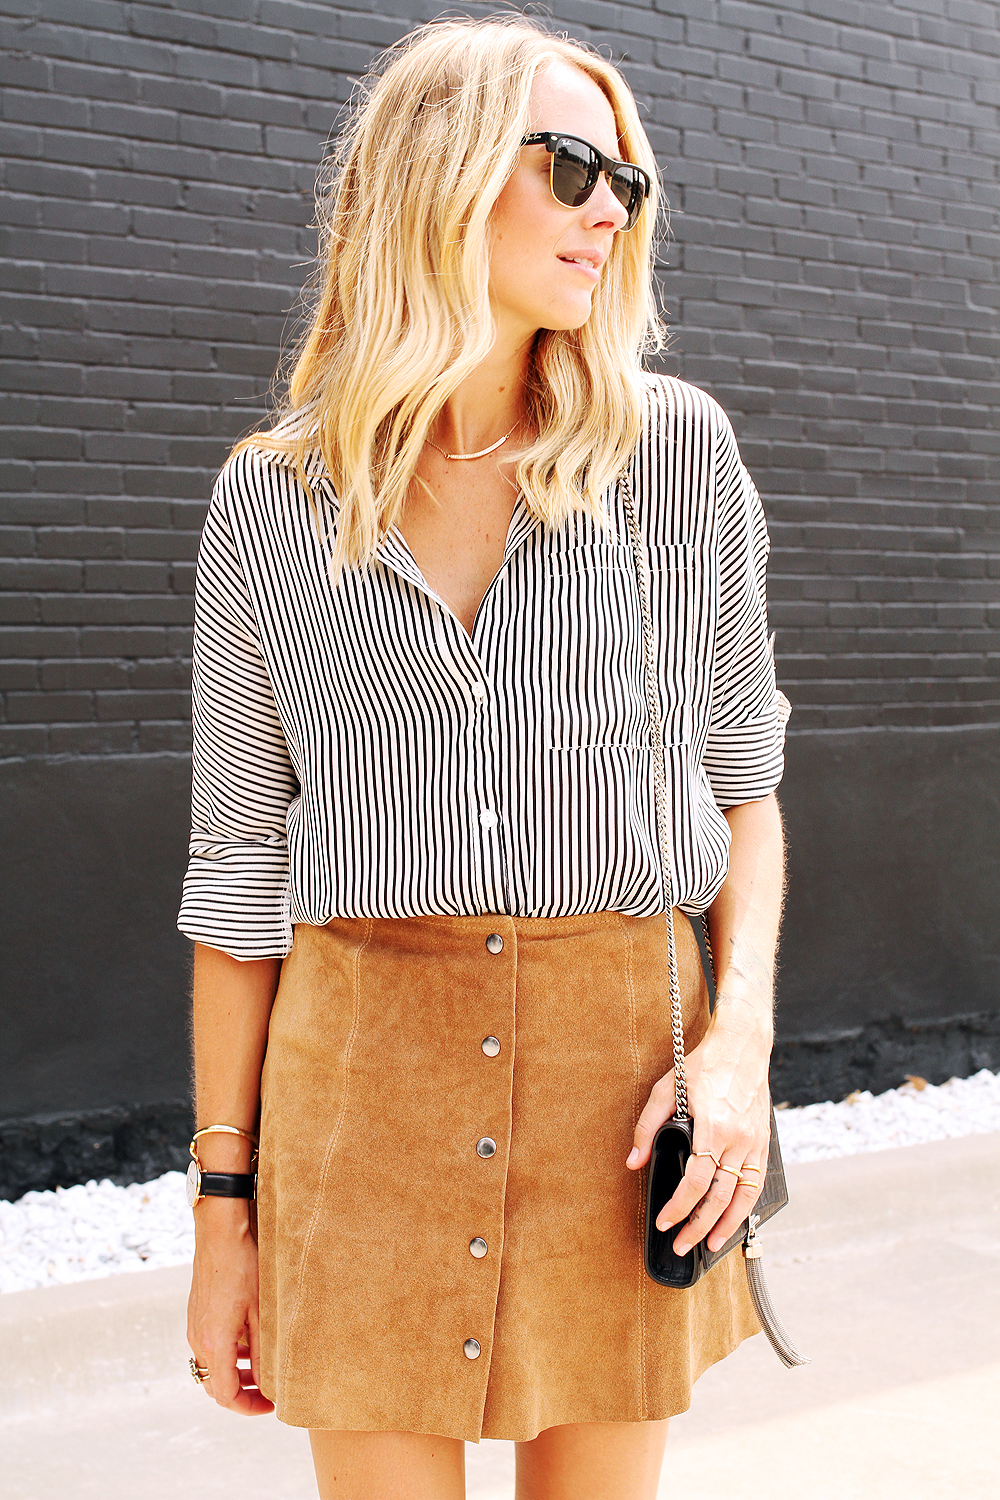 fashion-jackson-black-and-white-stripe-shirt-topshop-tan-suede-button-front-skirt-ray-ban-sunglasses